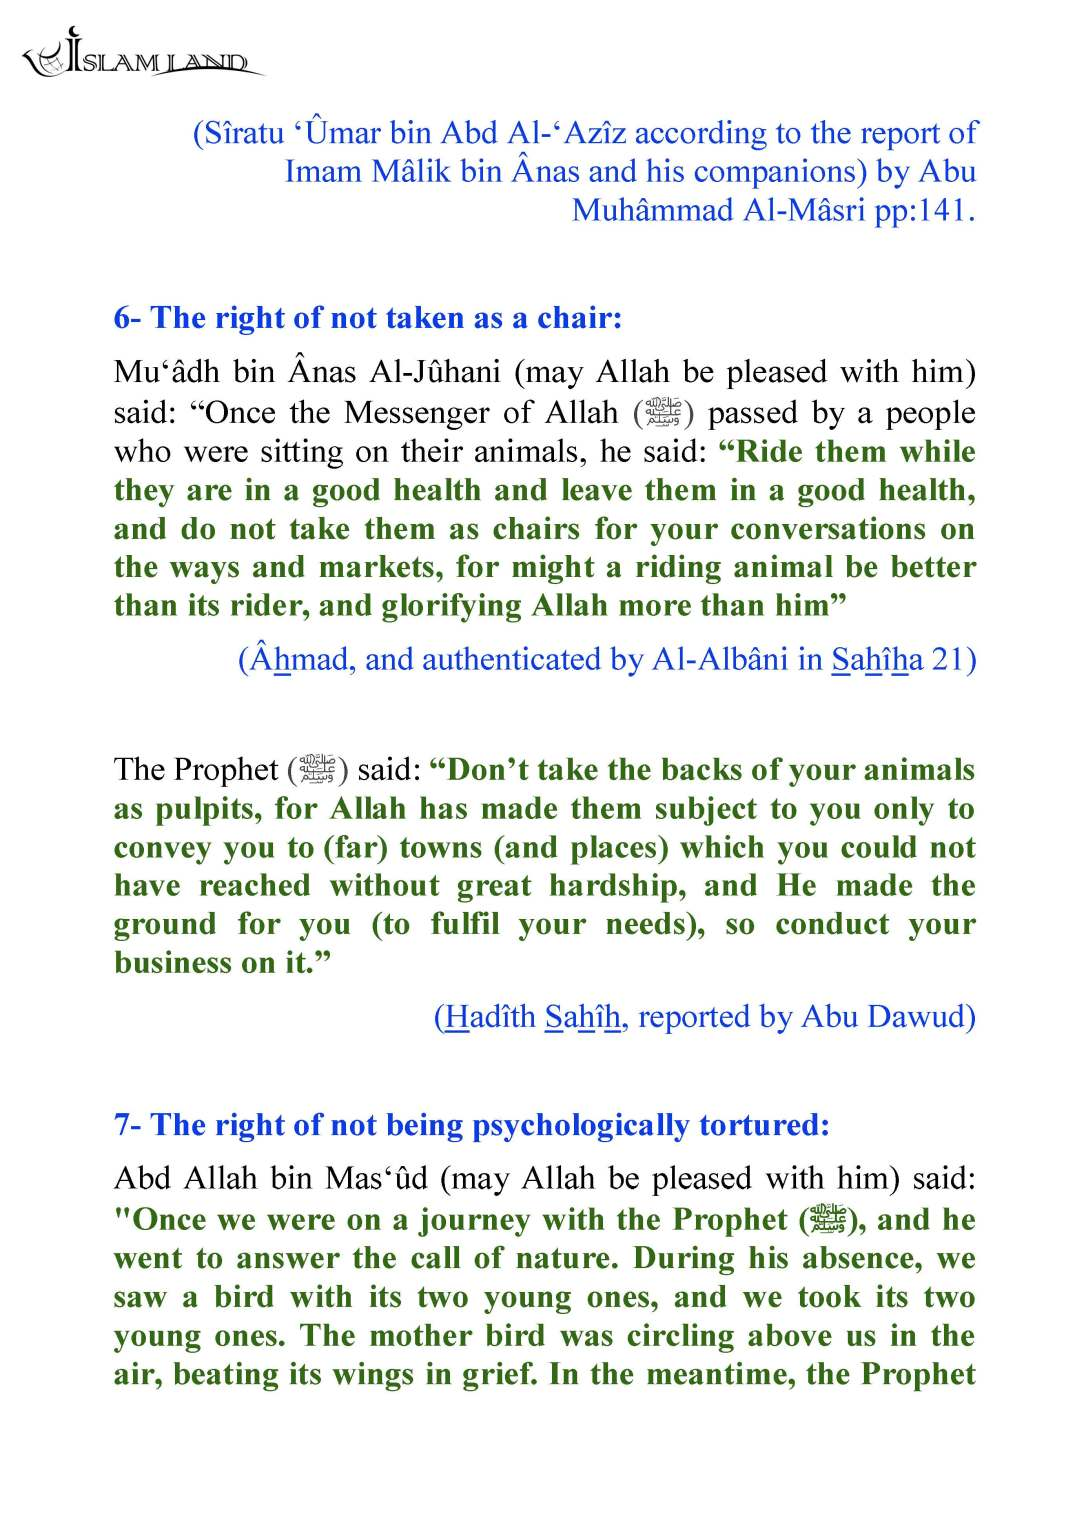 en_ANIMAL_RIGHTS_IN_ISLAMIC_CHRISTIAN_AND_JEWISH_SHARIA_LAW_Page_12